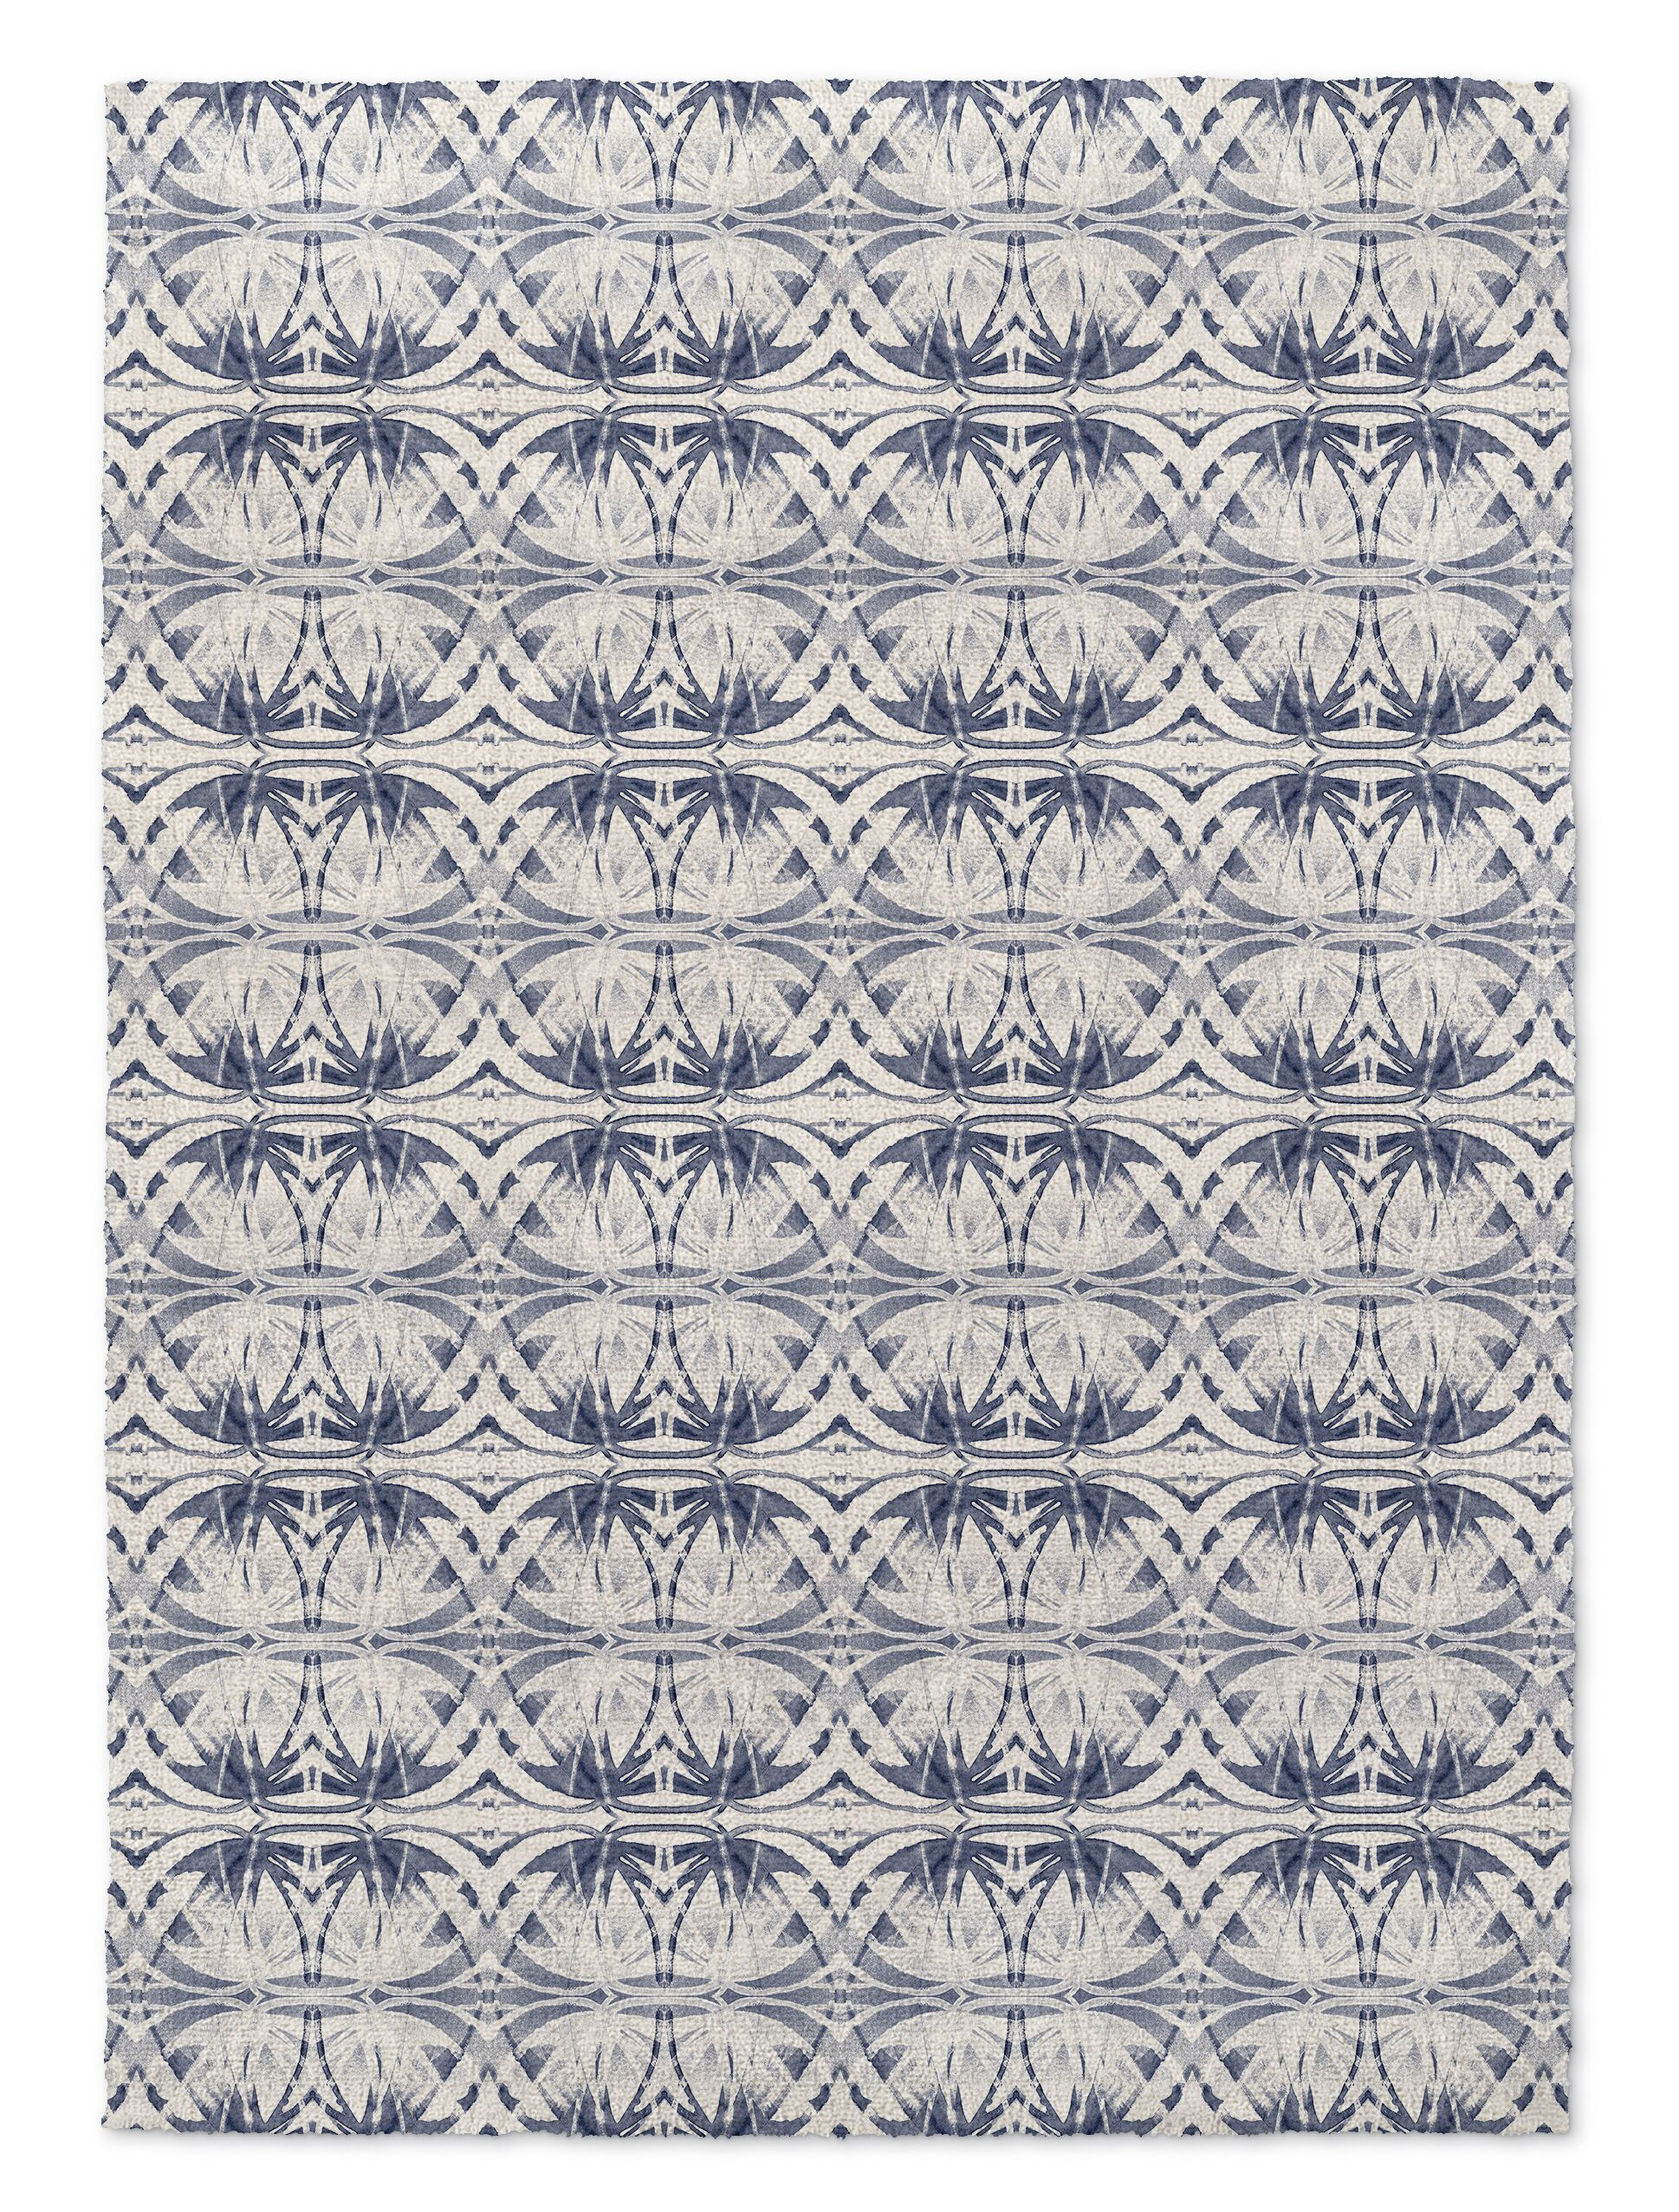 Harty Gray Area Rug Size: Rectangle 2' x 3'